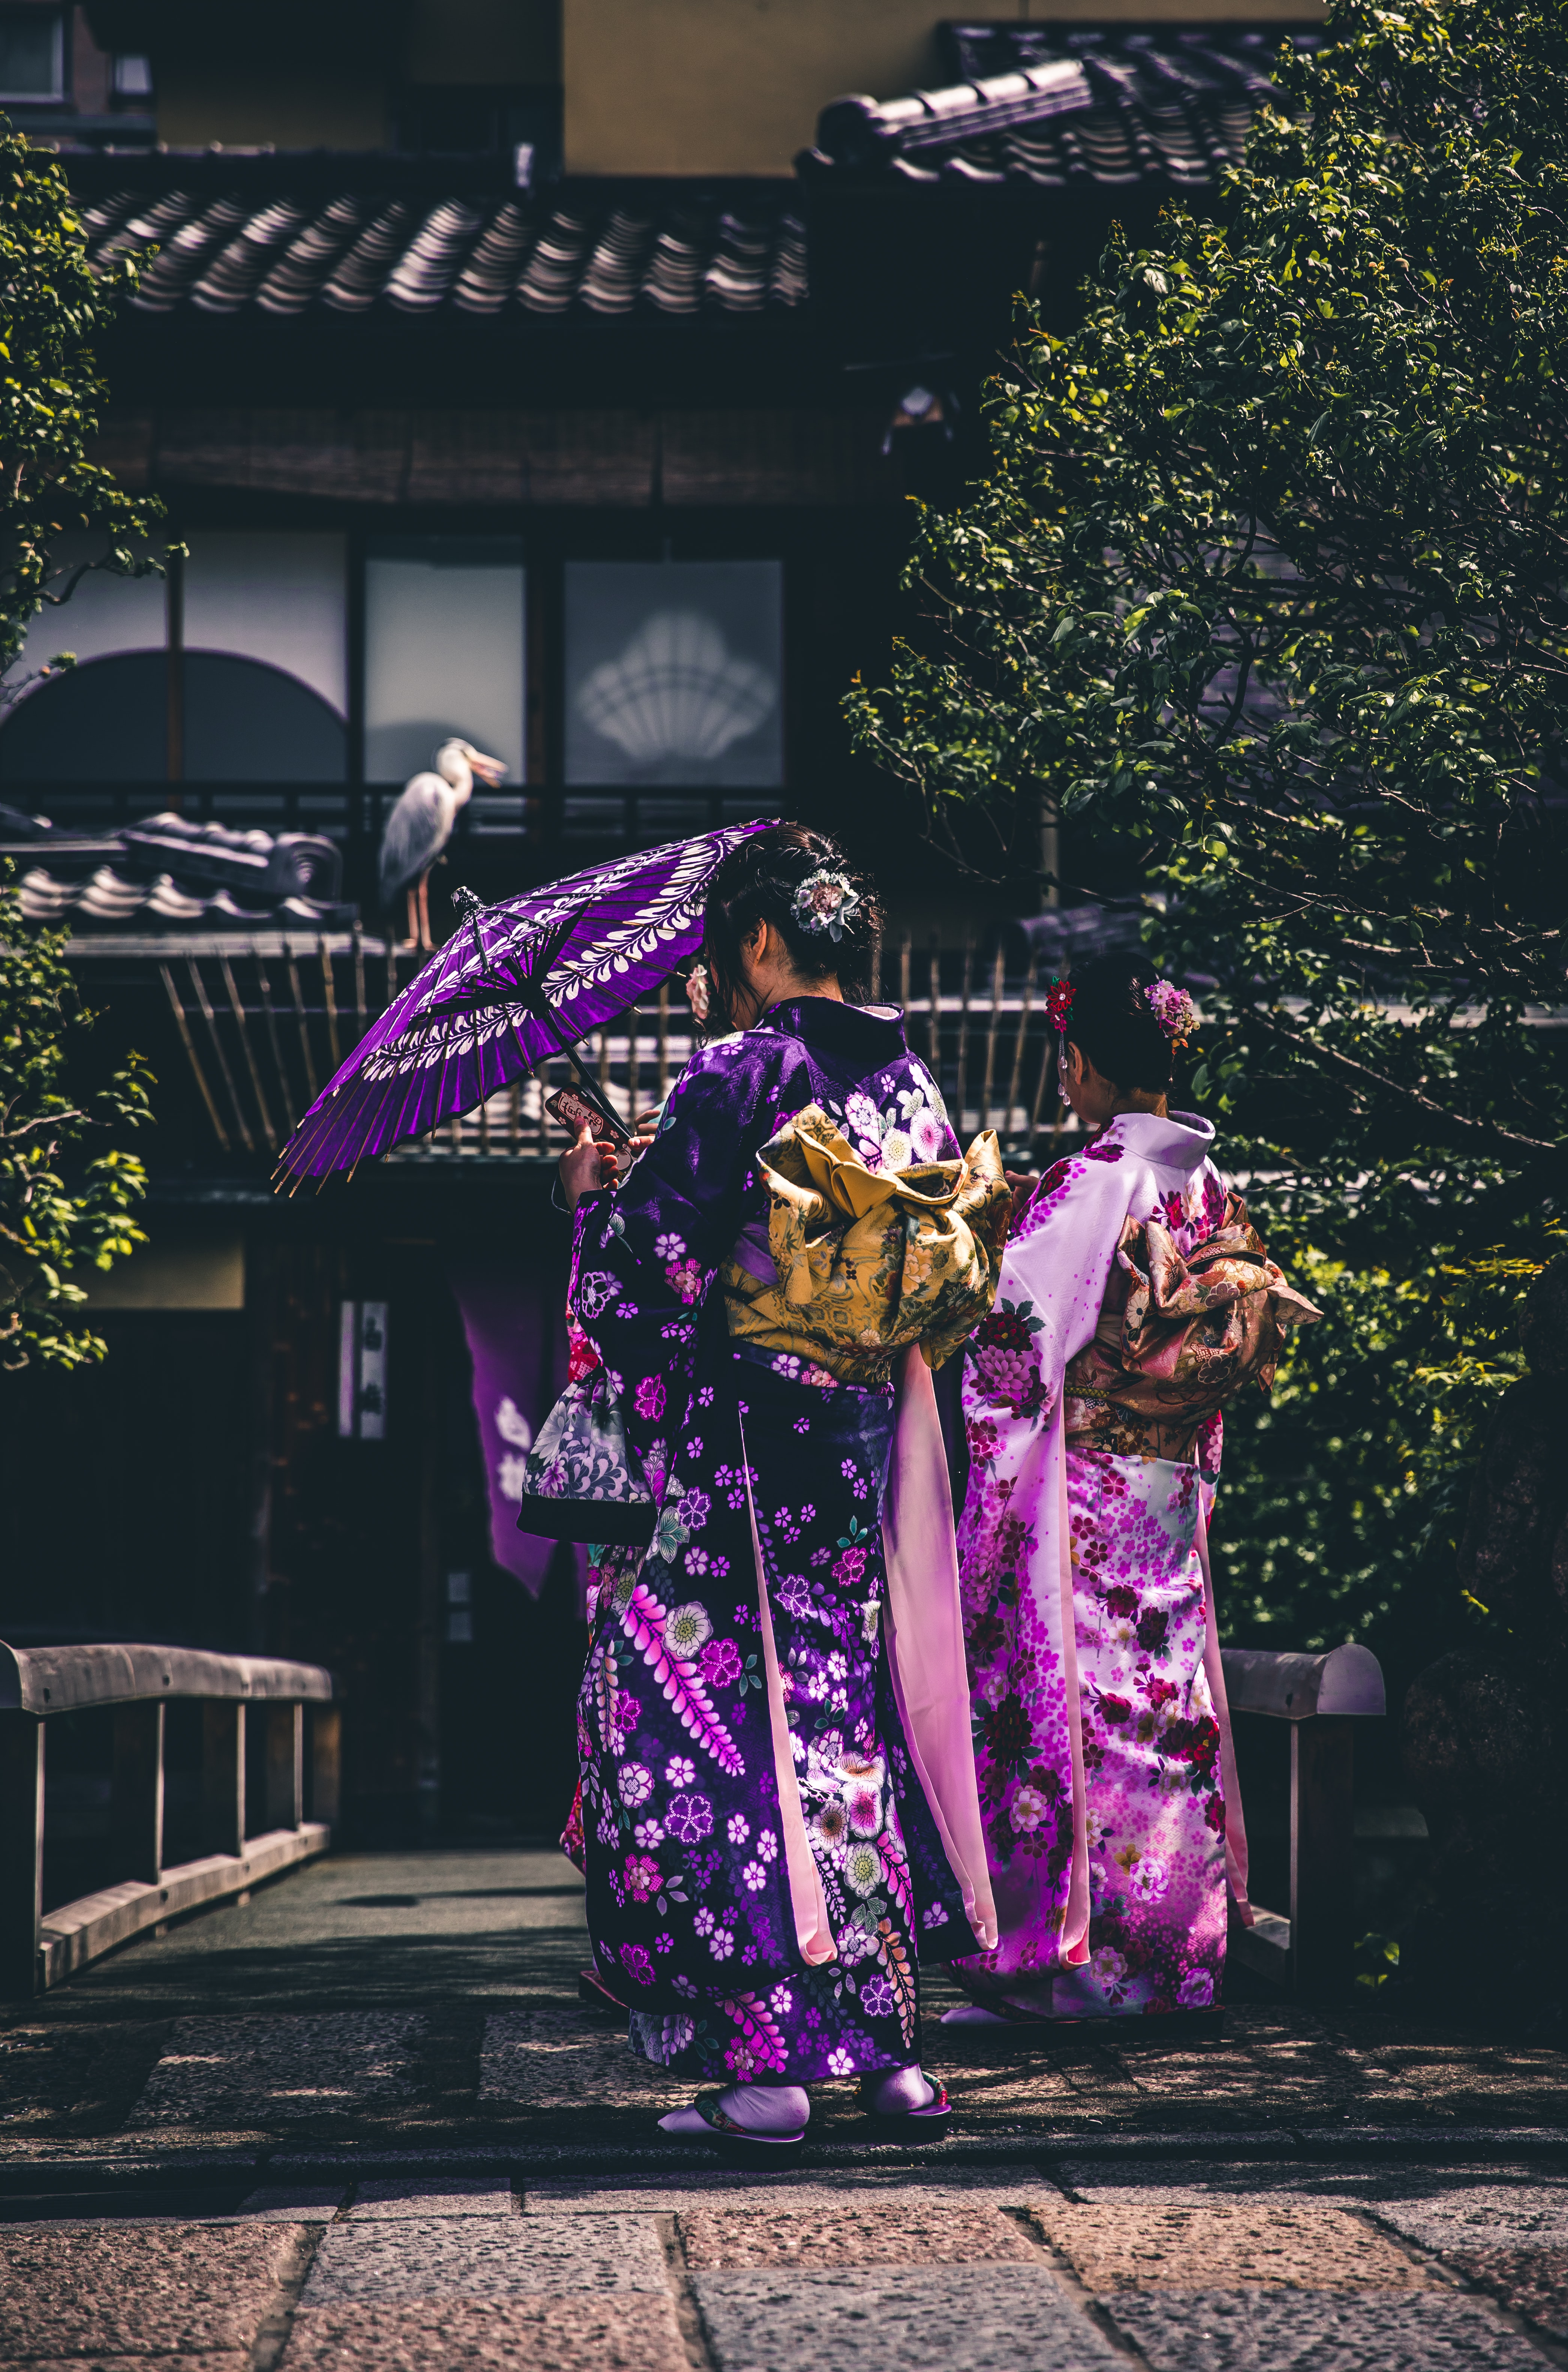 Woman carrying umbrellas in elegant purple and pink Japanese geisha robes